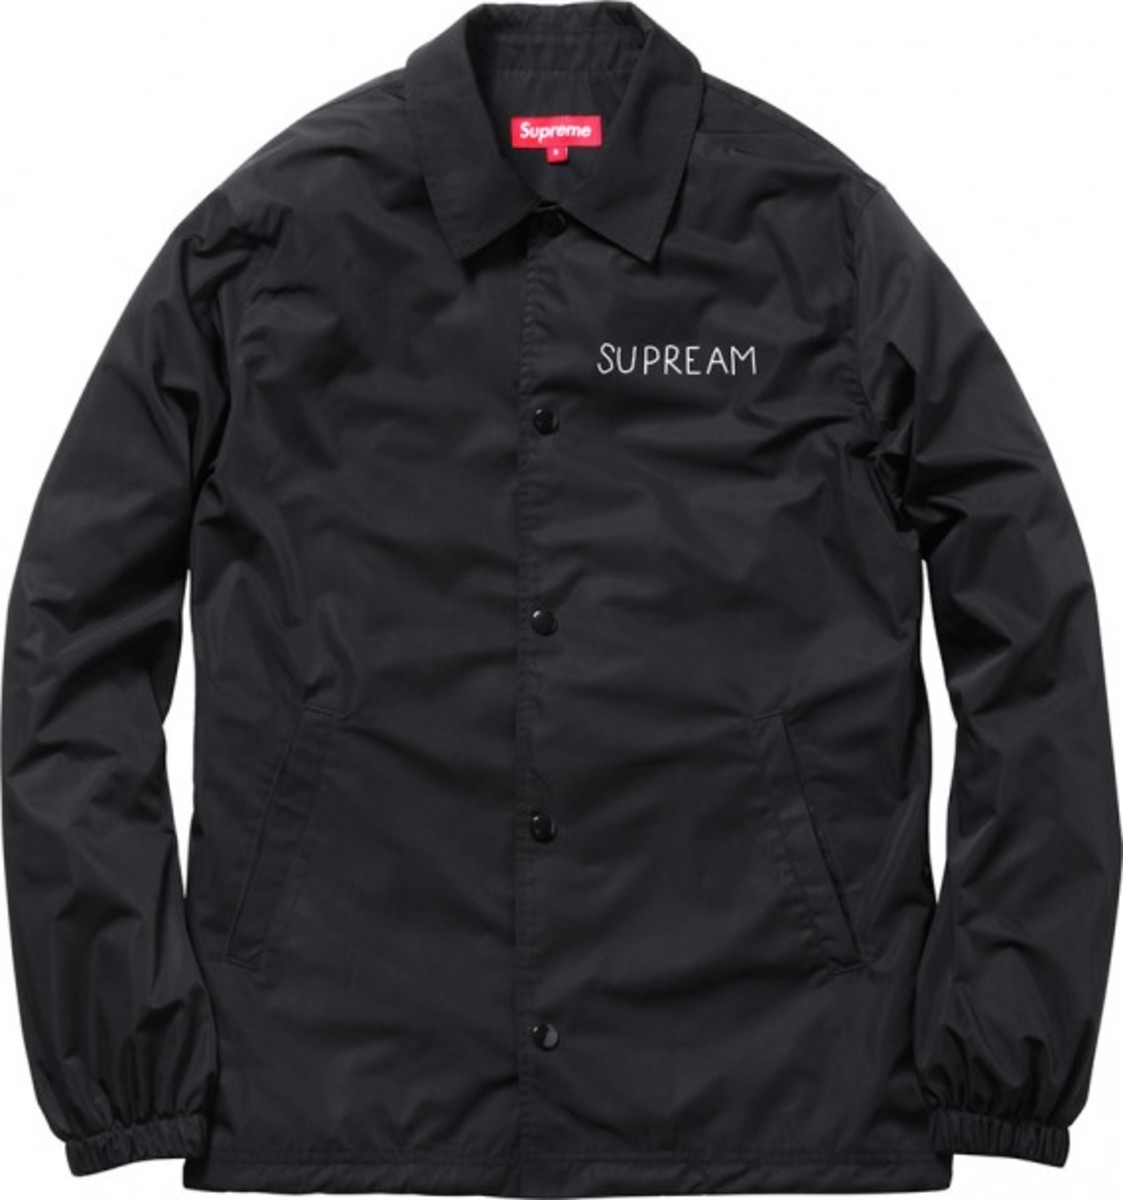 supreme-spring-summer-2013-outerwear-collection-26